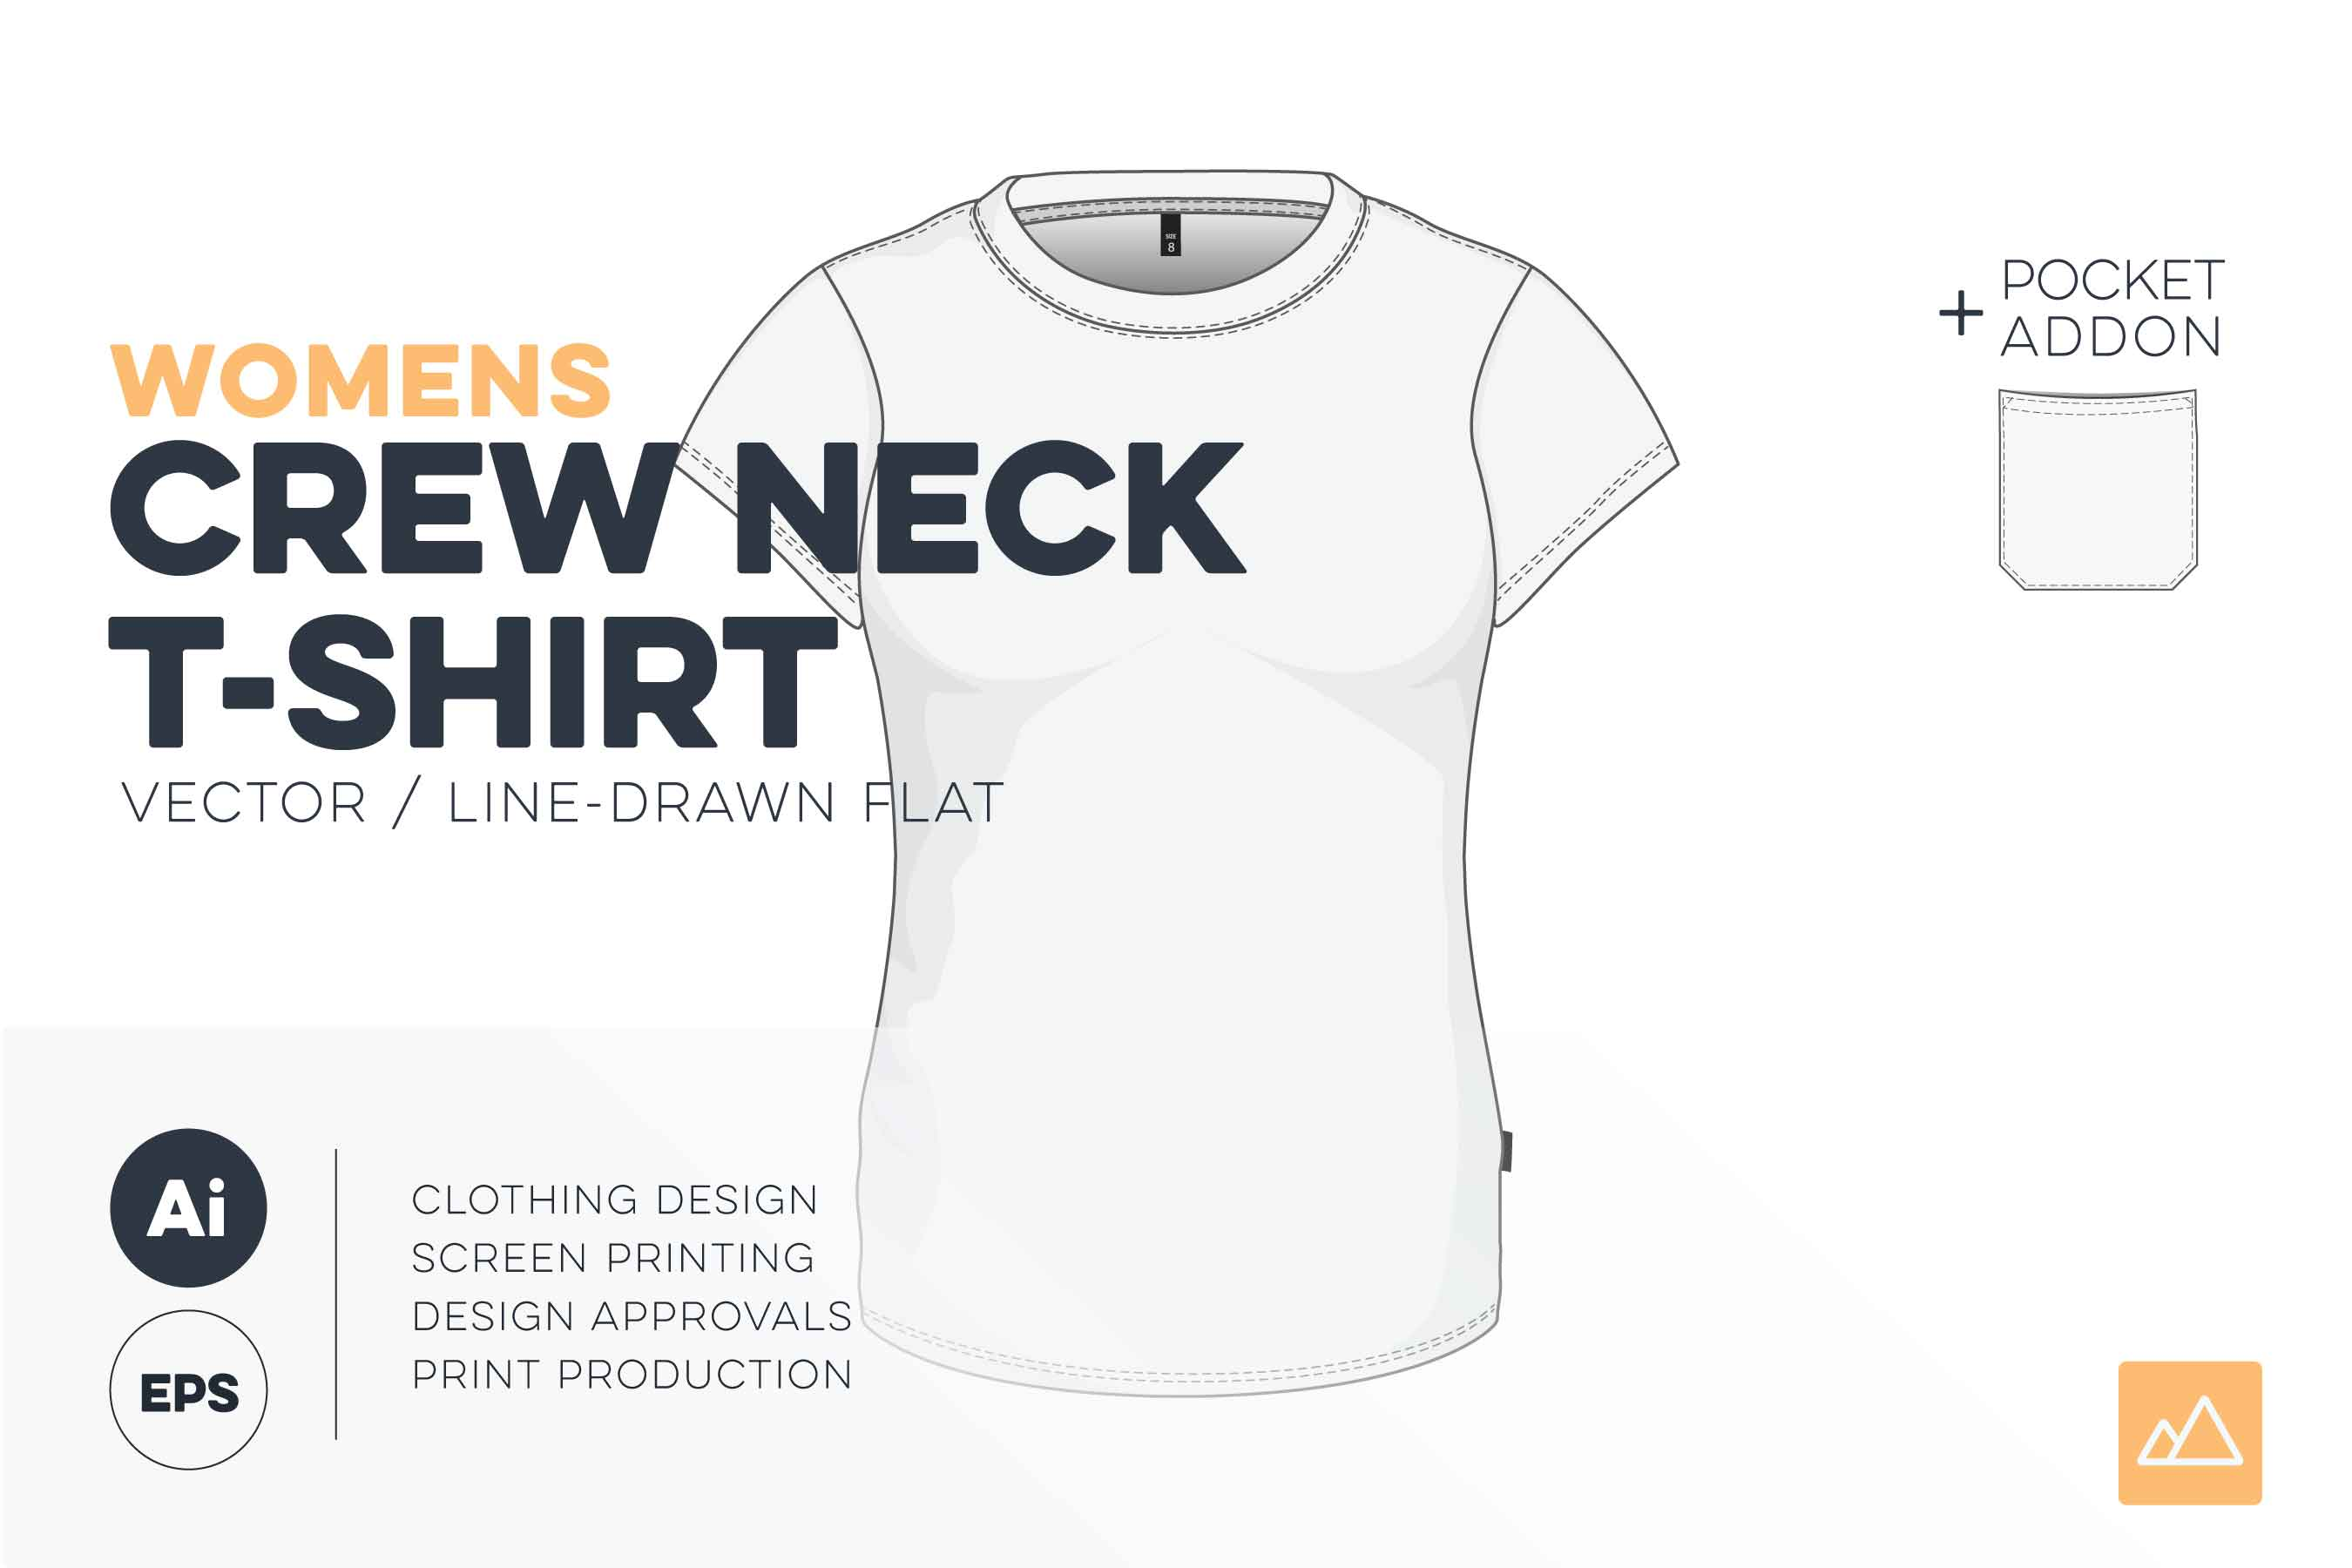 Womens crew neck t-shirt template vector pack